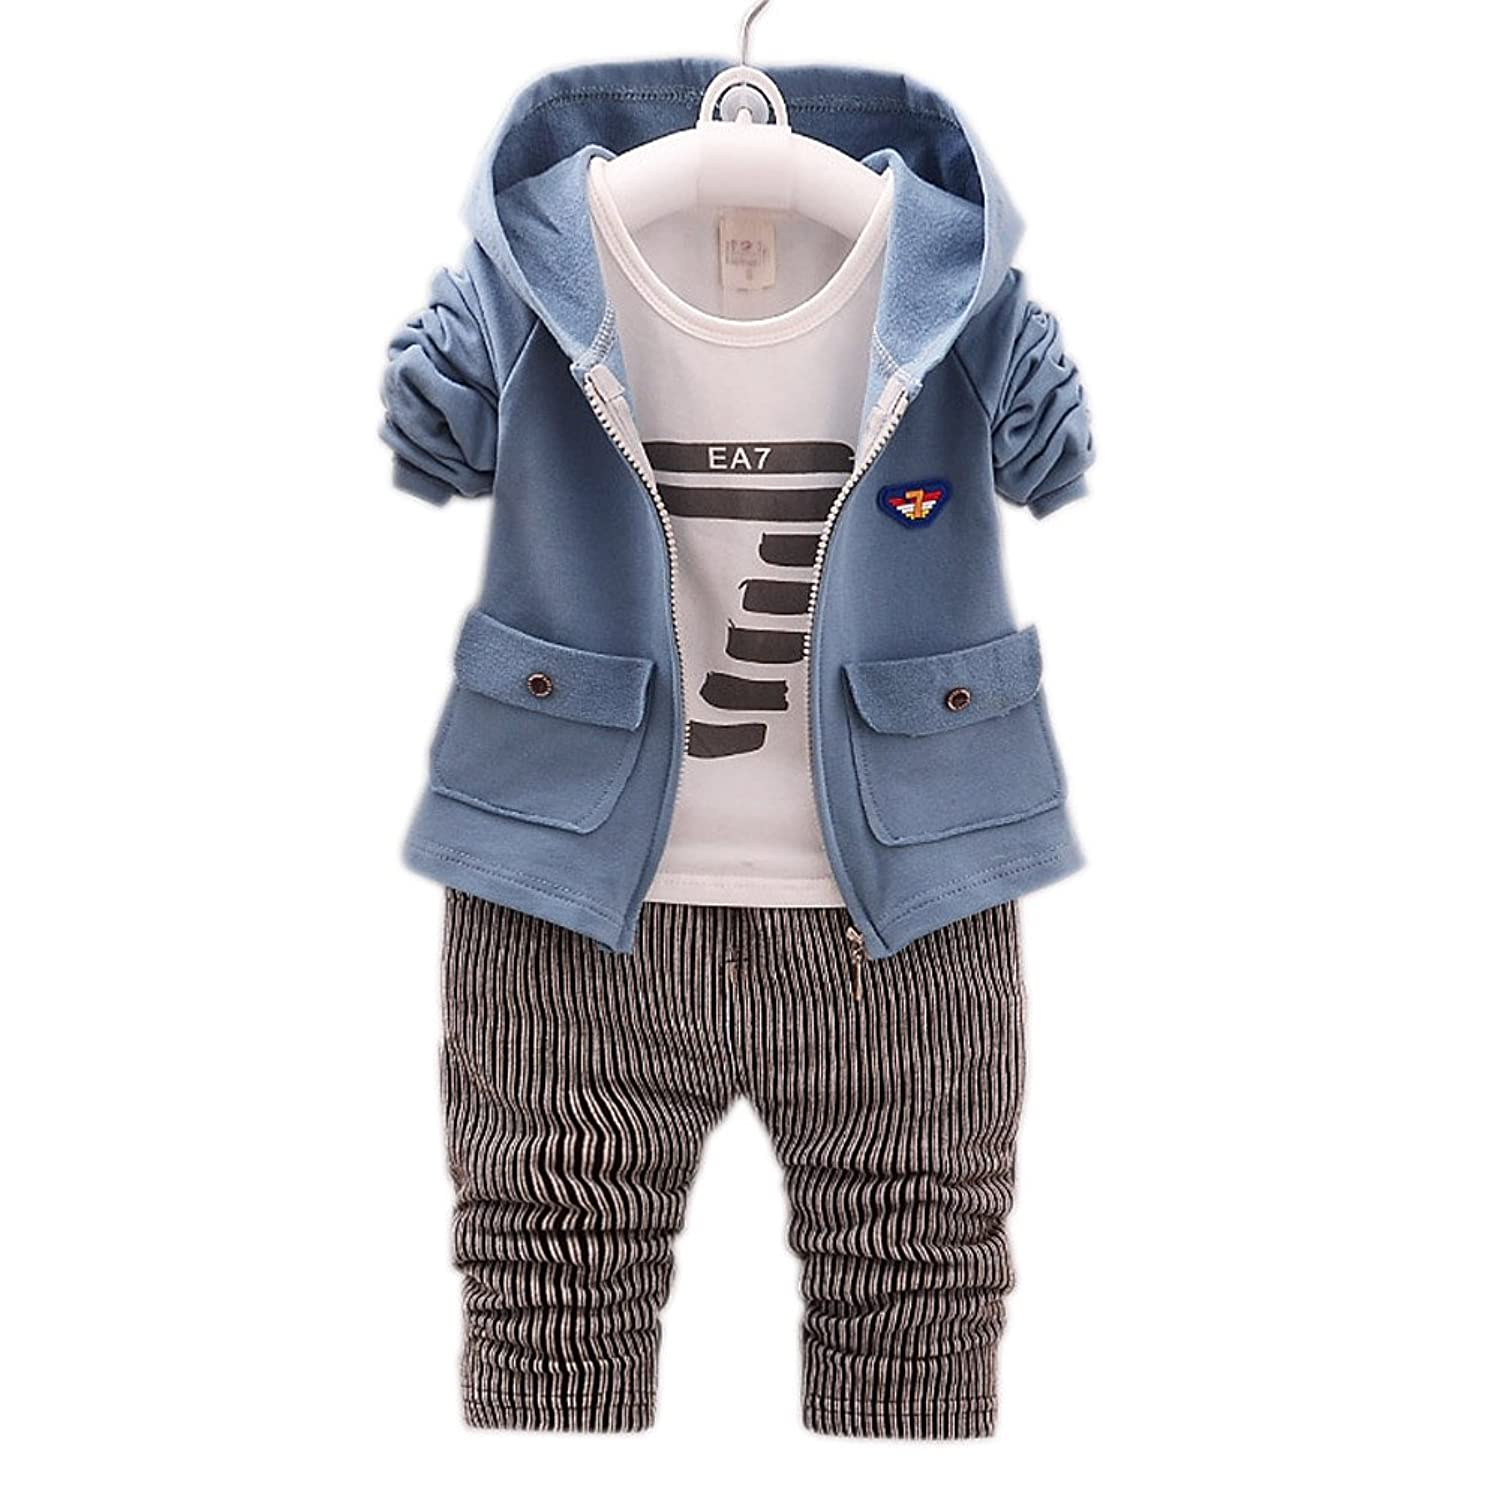 Pants DIIMUU Kids Baby Boy Clothes Boys Clothing Suits Outfits Sets T-shirt